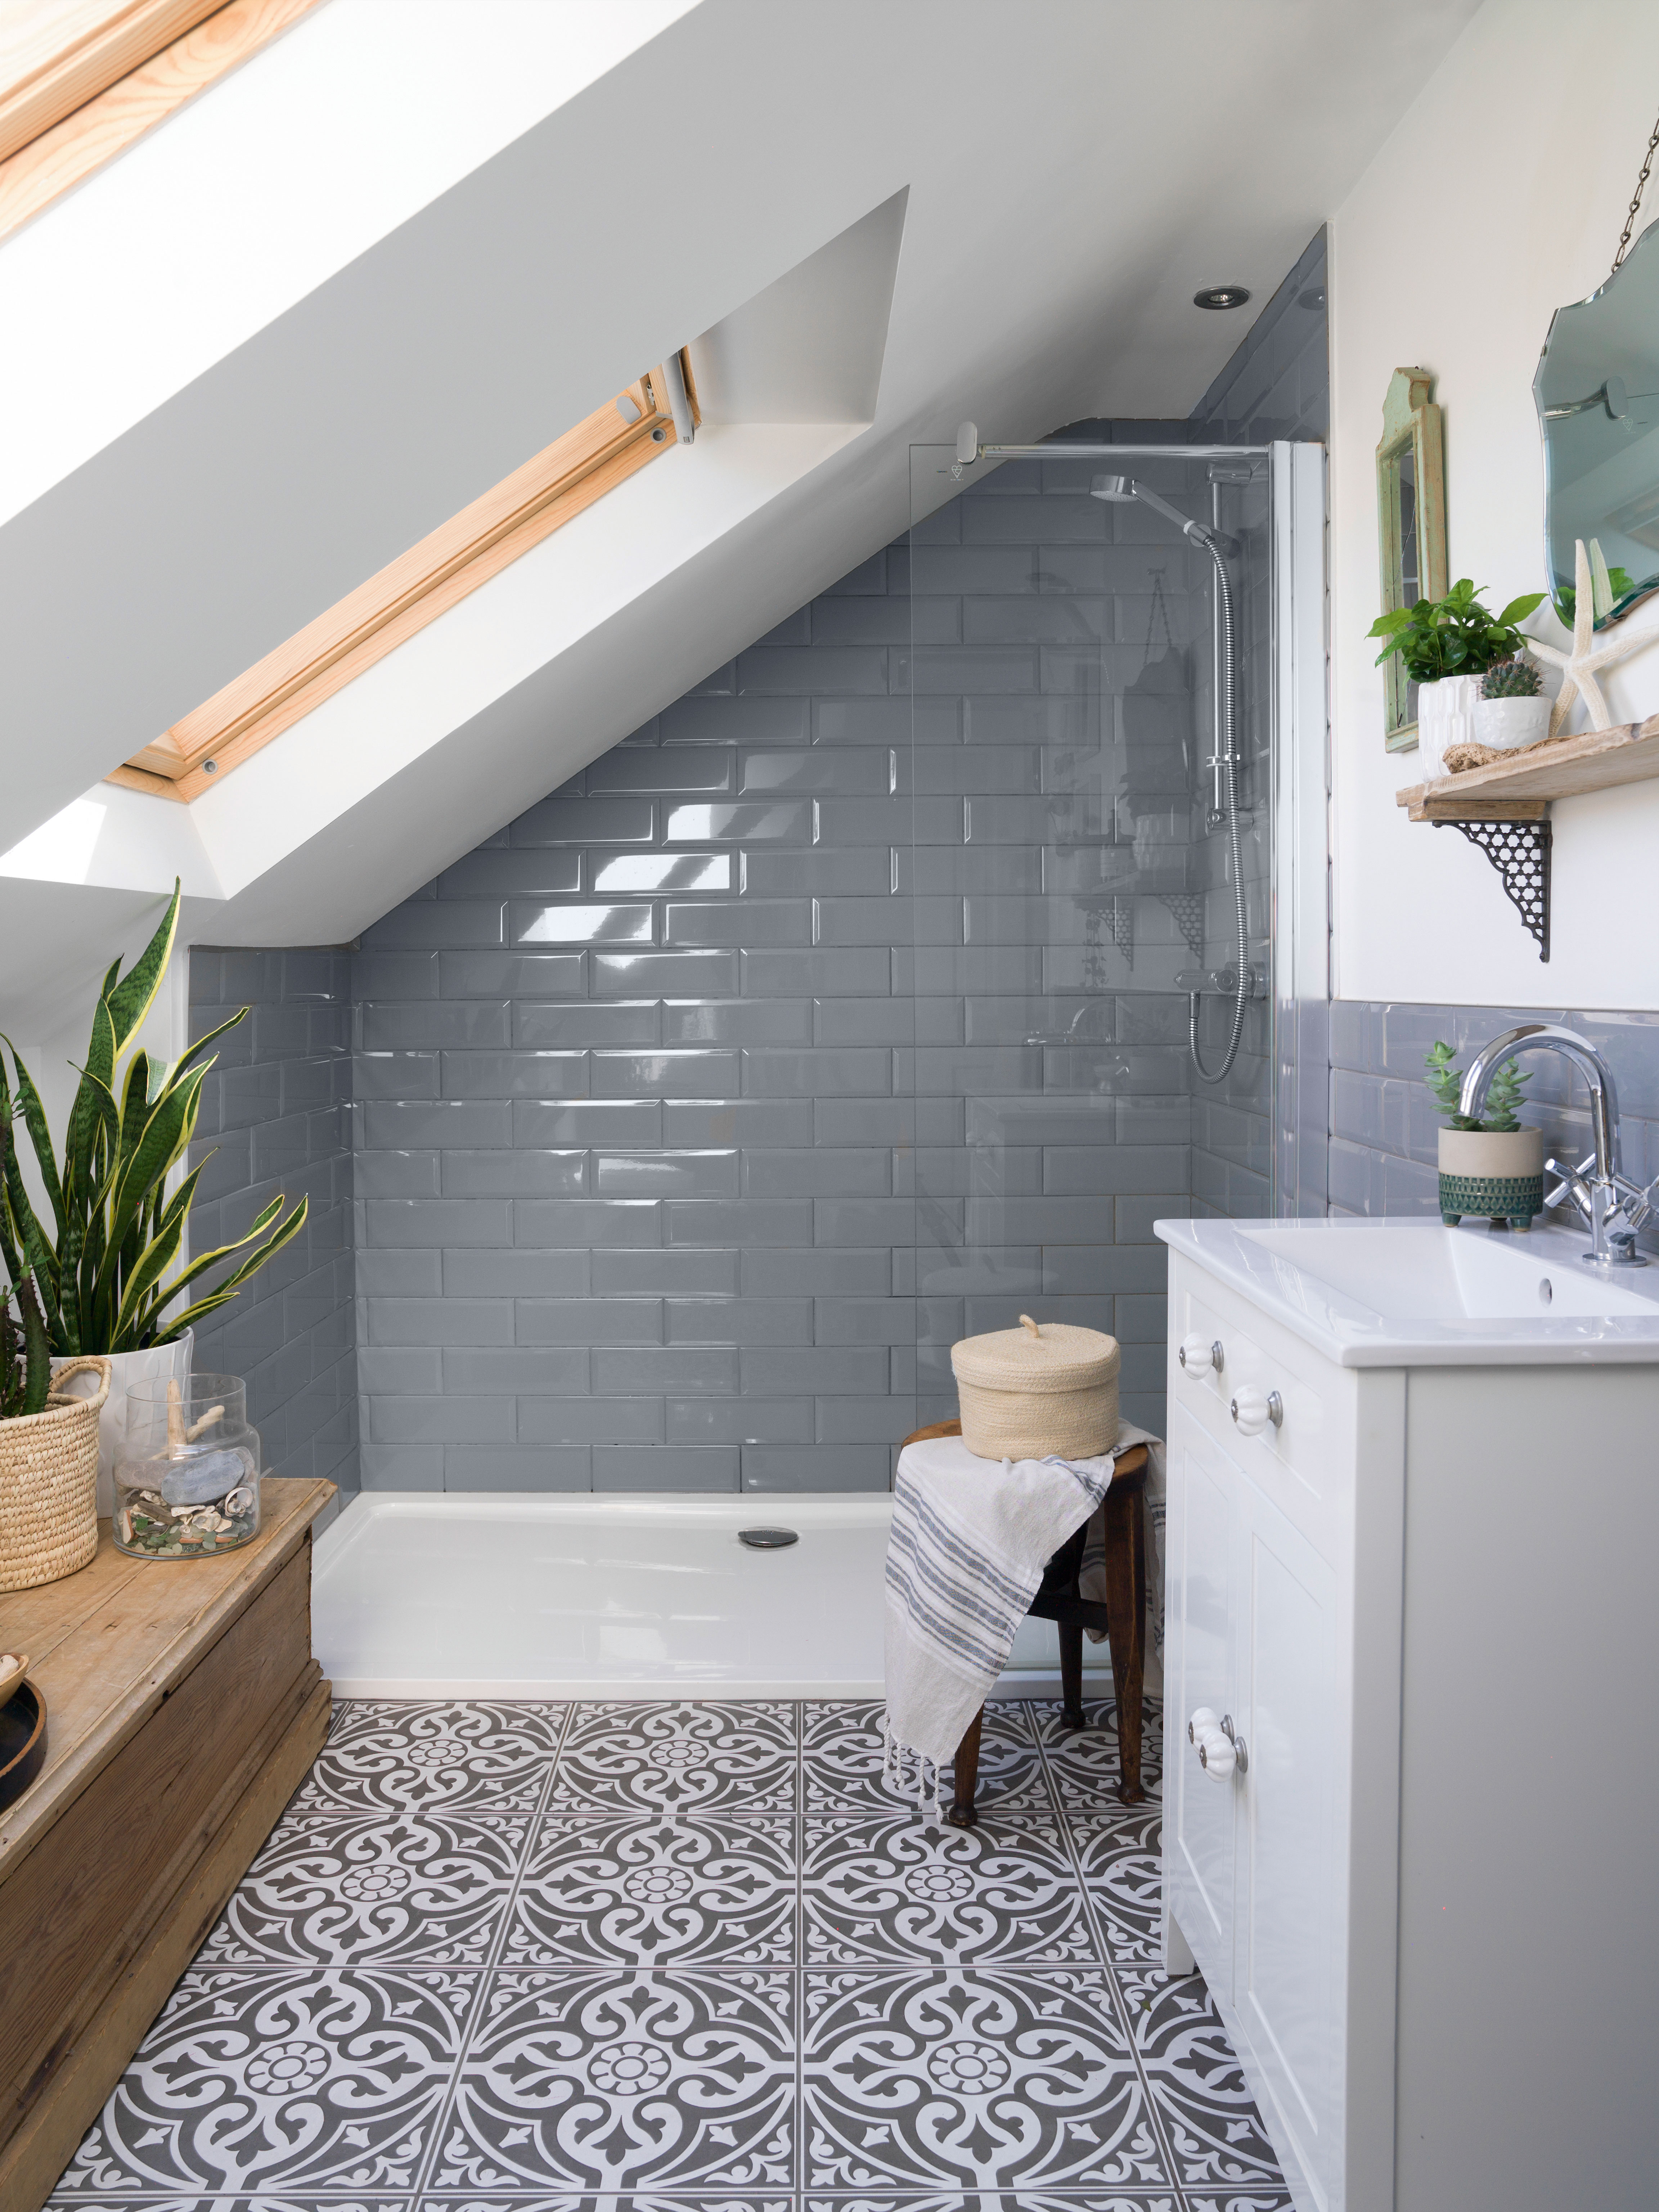 15 small bathroom tile ideas stylish ways to make your space feel bigger real homes